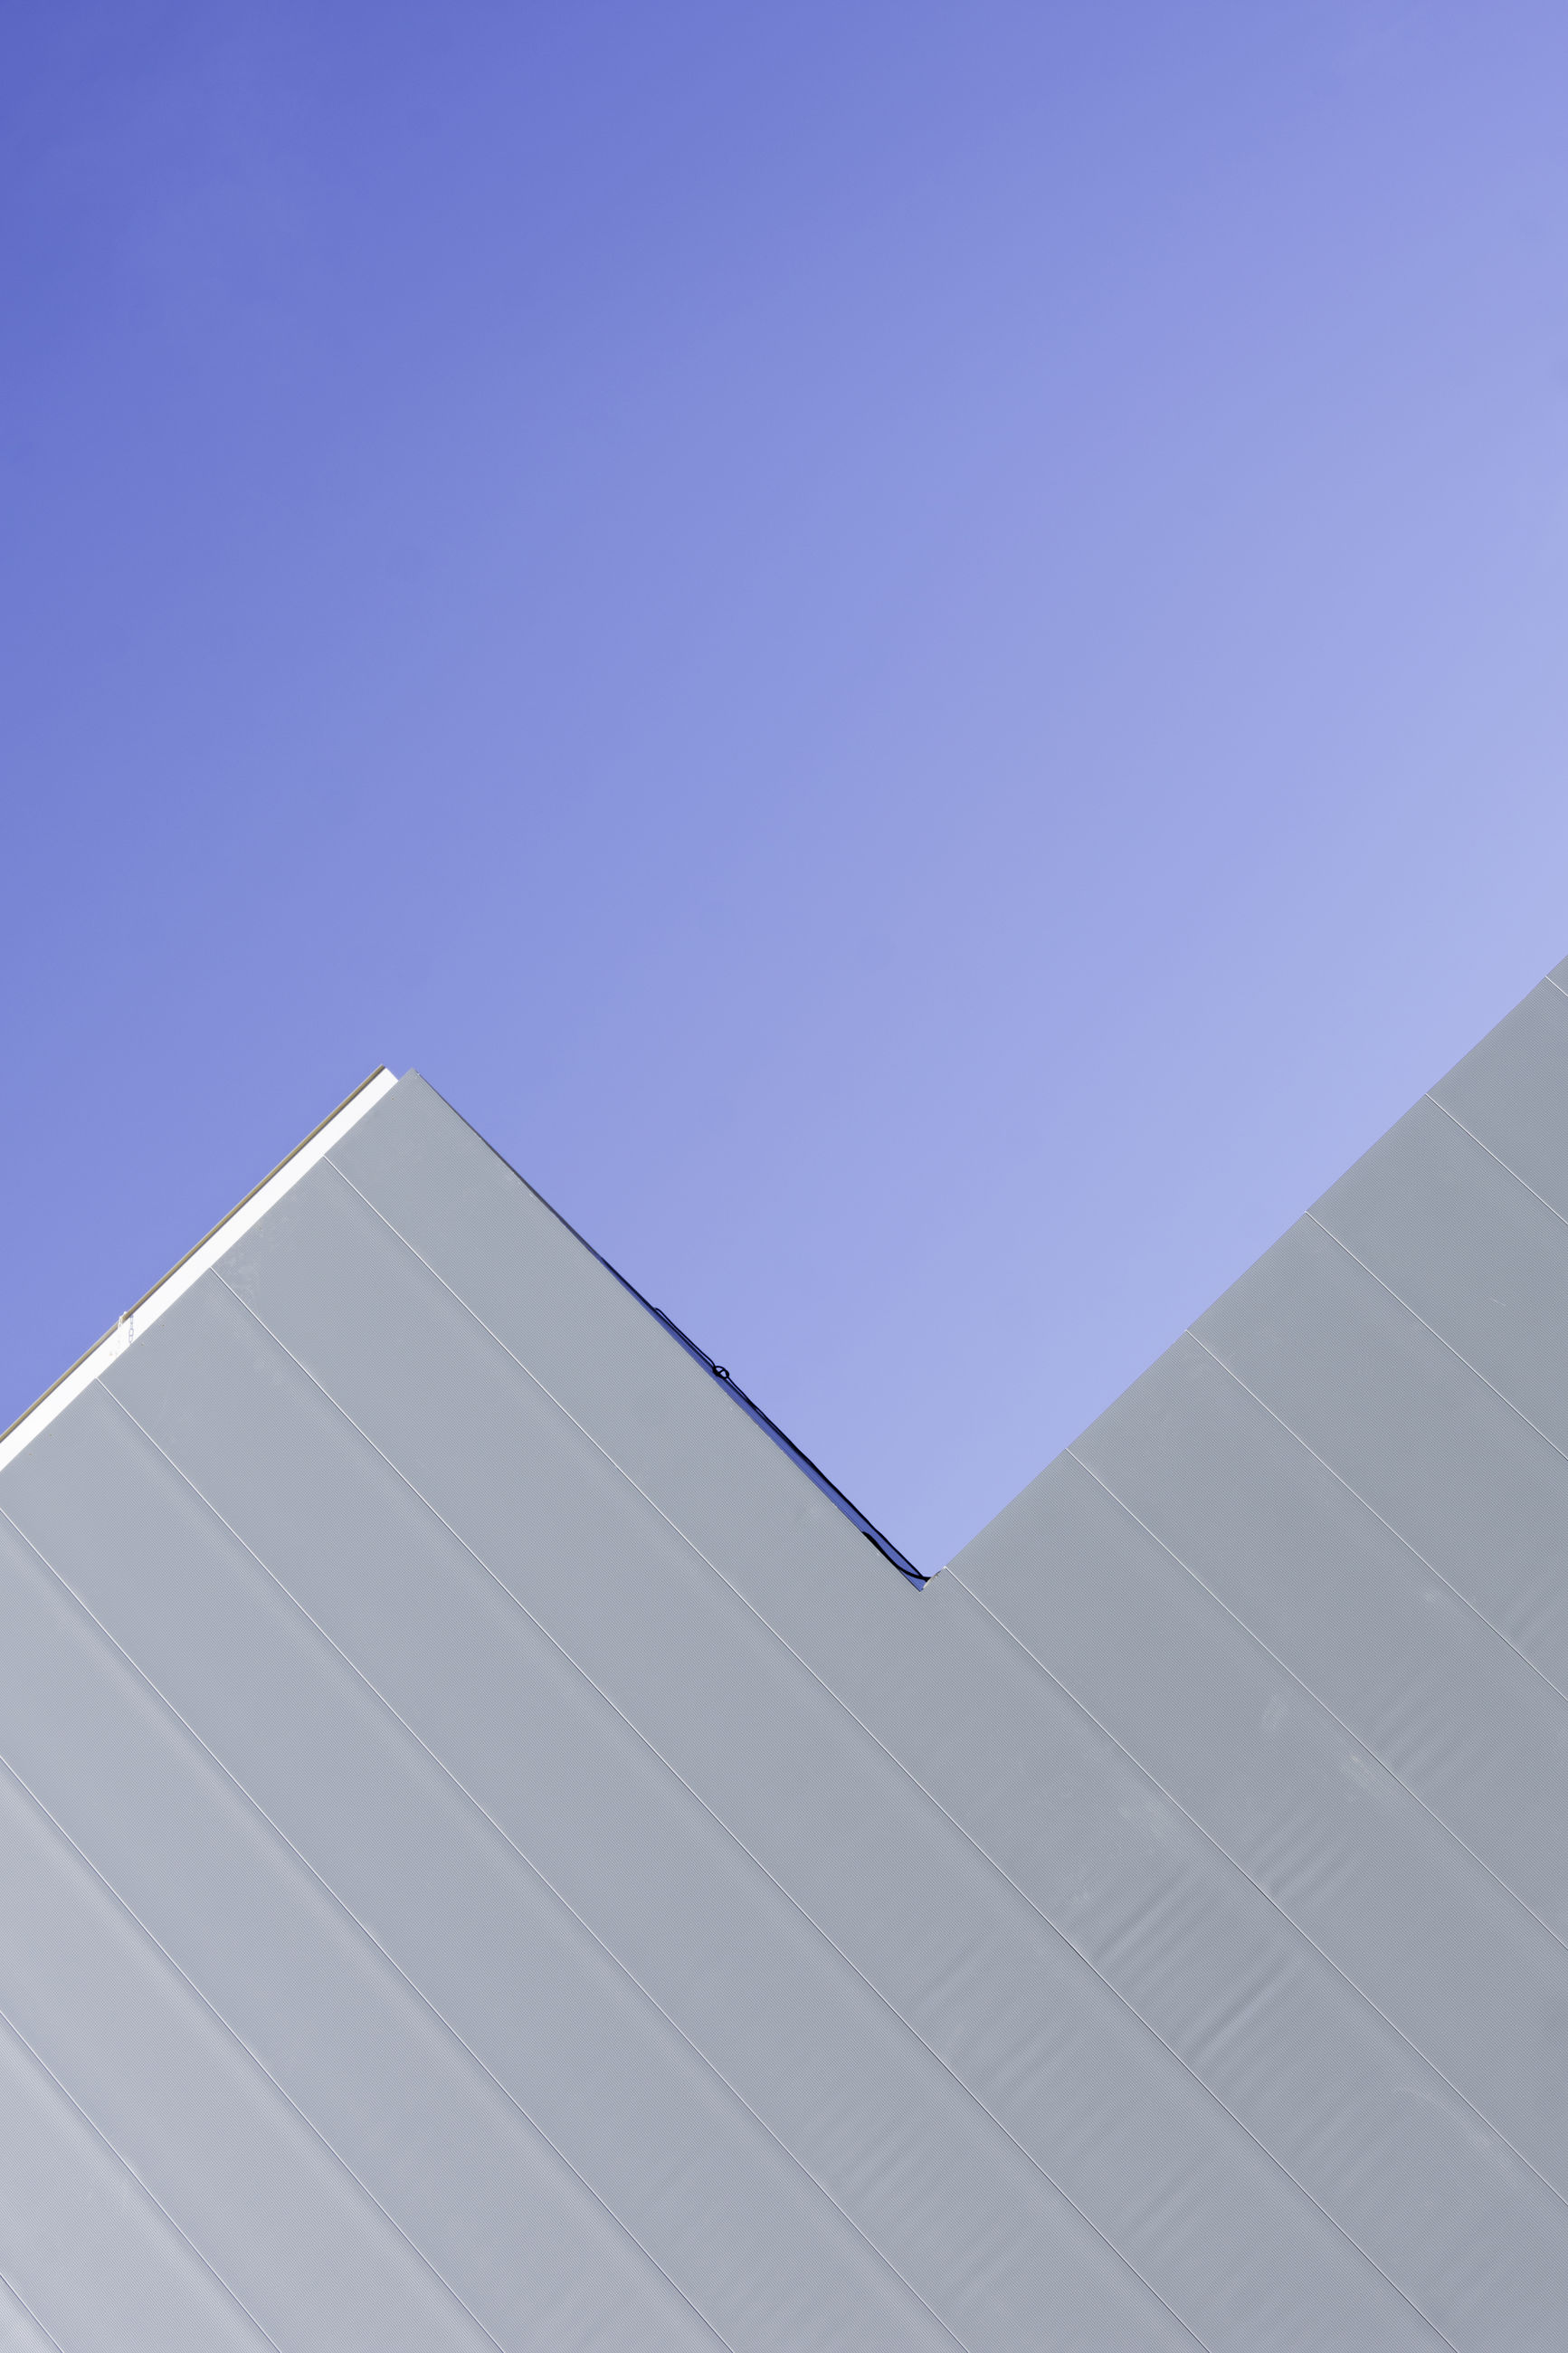 clear sky, low angle view, architecture, building exterior, no people, day, built structure, outdoors